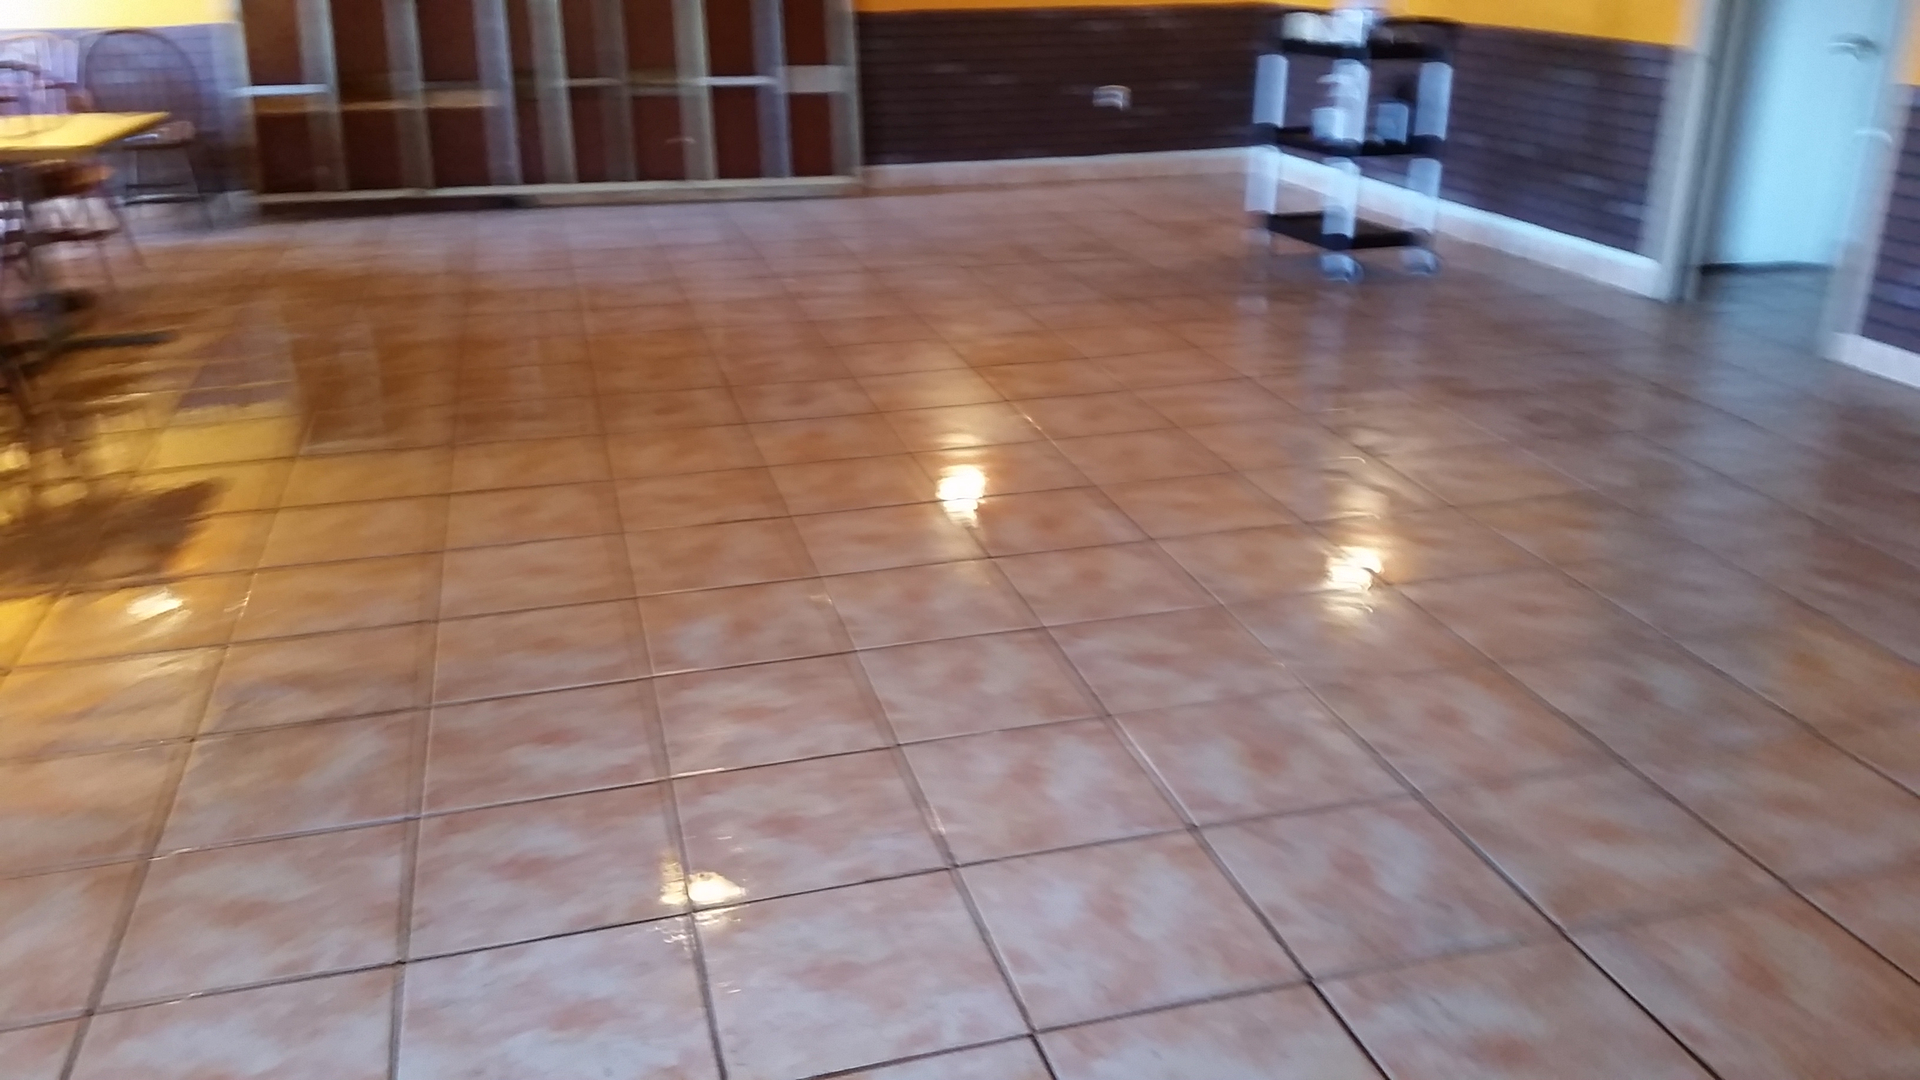 marble related finest s granite cleaning london renovation posts marblerenovation floor terrazzo floors